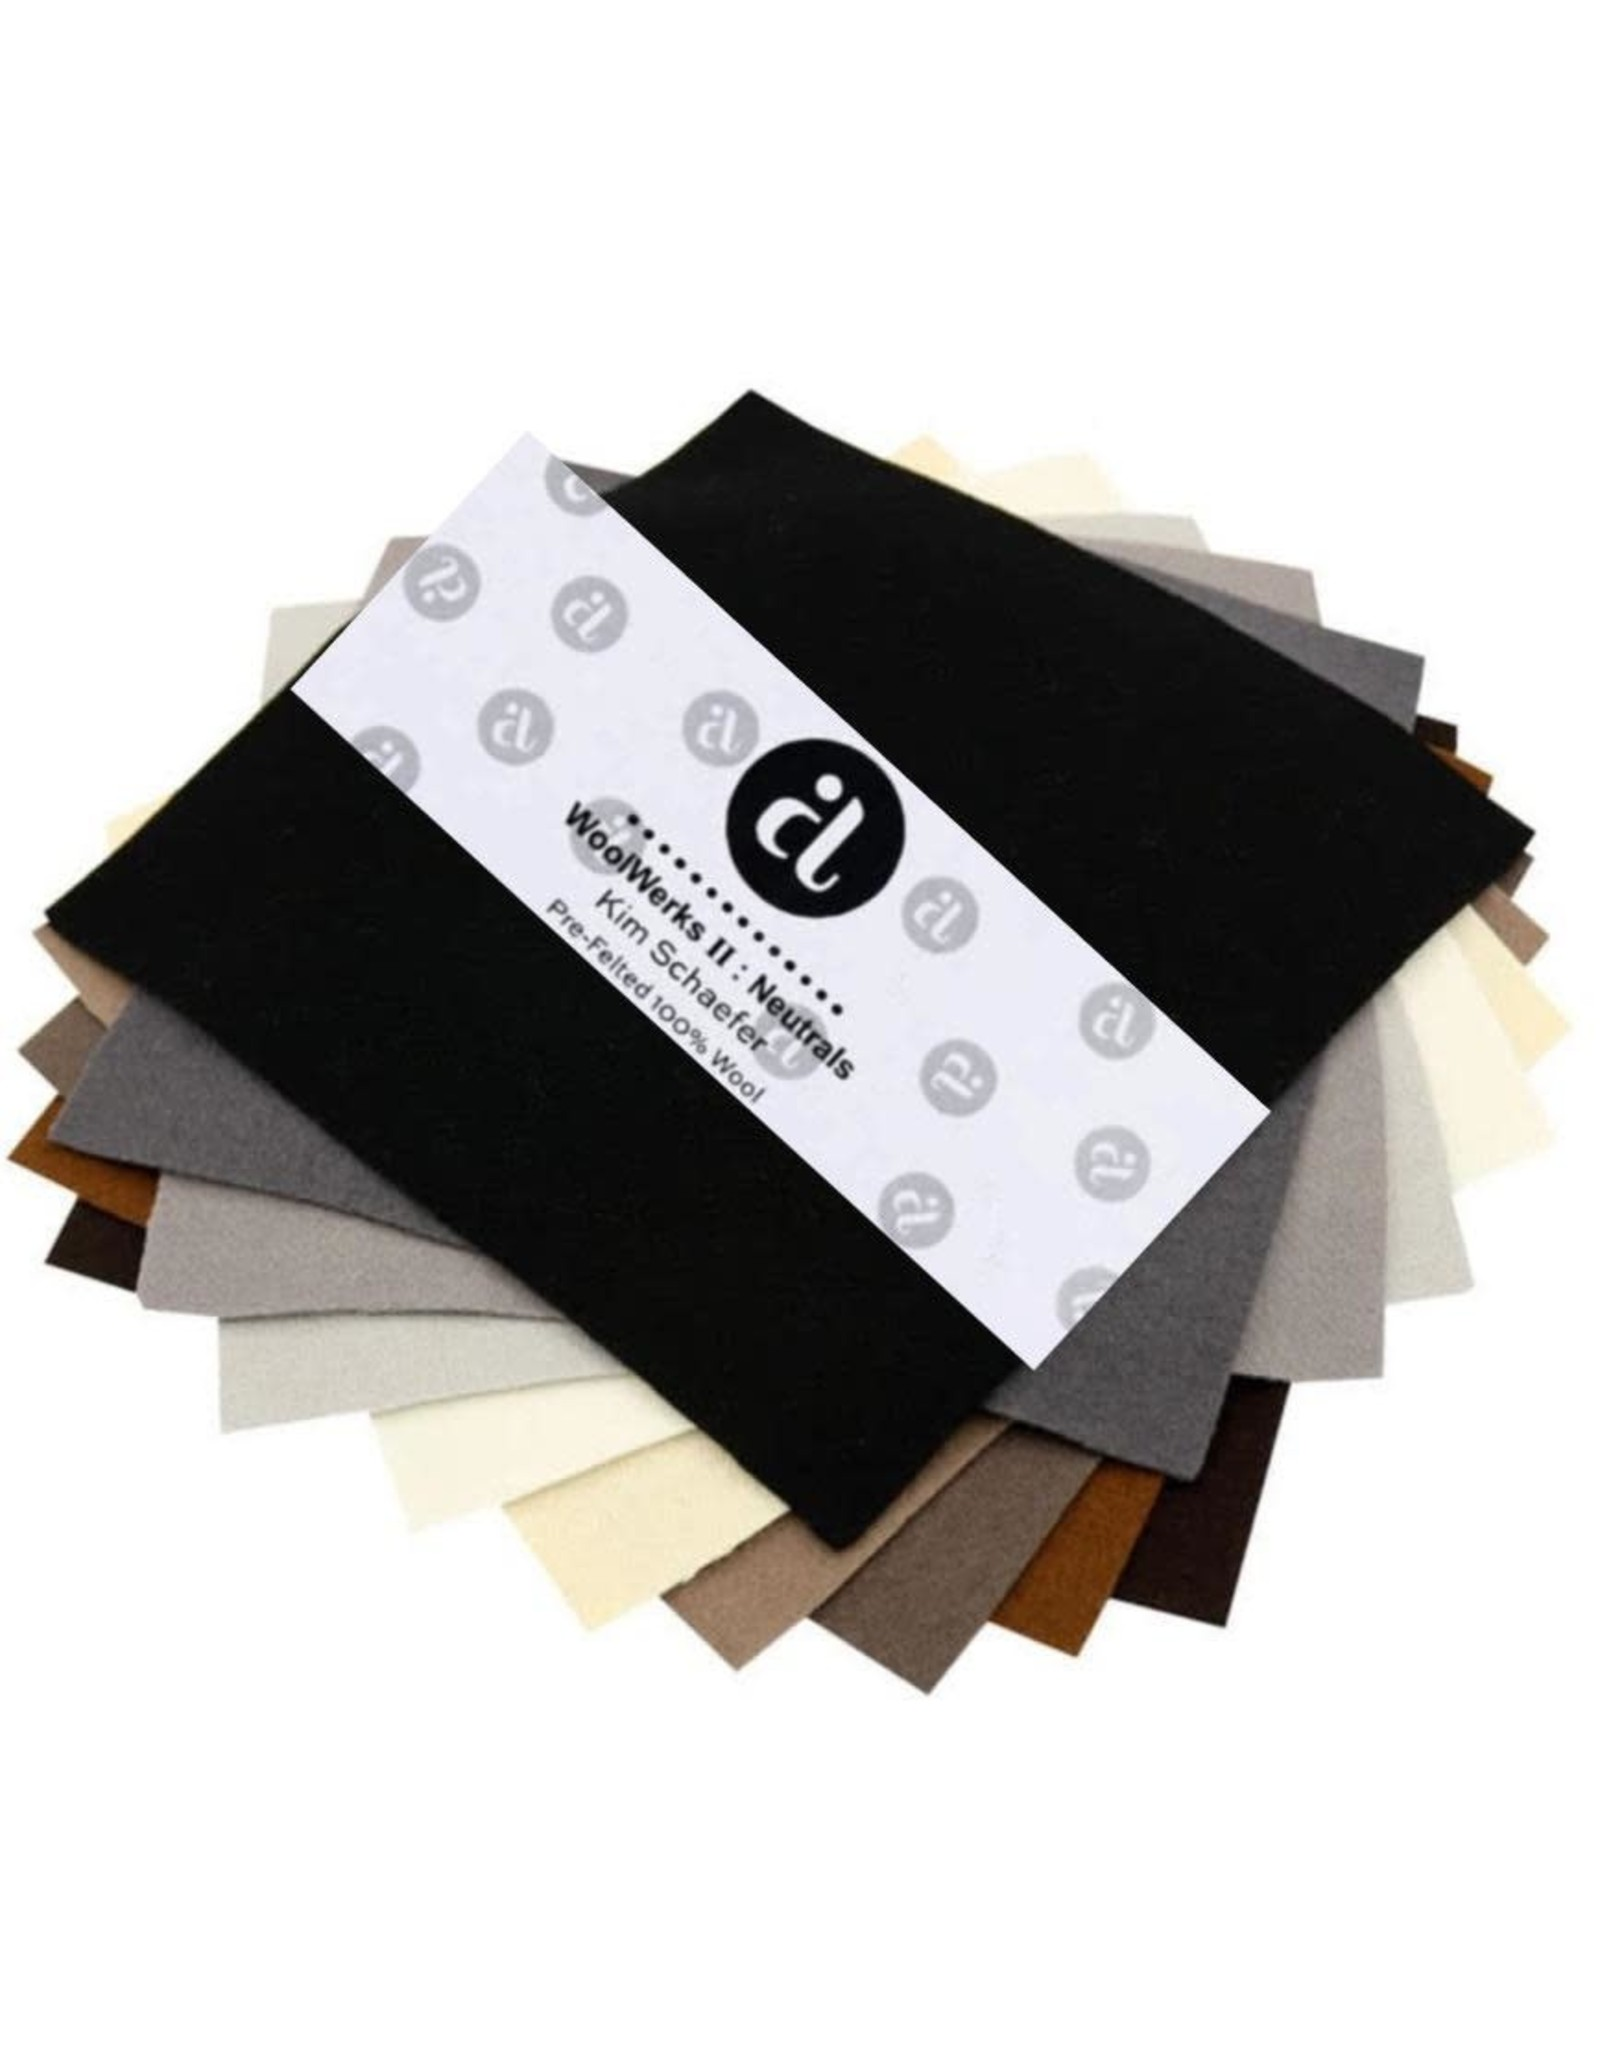 """Andover Fabrics WoolWerks II: Neutrals, Pre-Felted 100% Wool, charm pack of 10 ea. 5""""x5"""" pieces"""